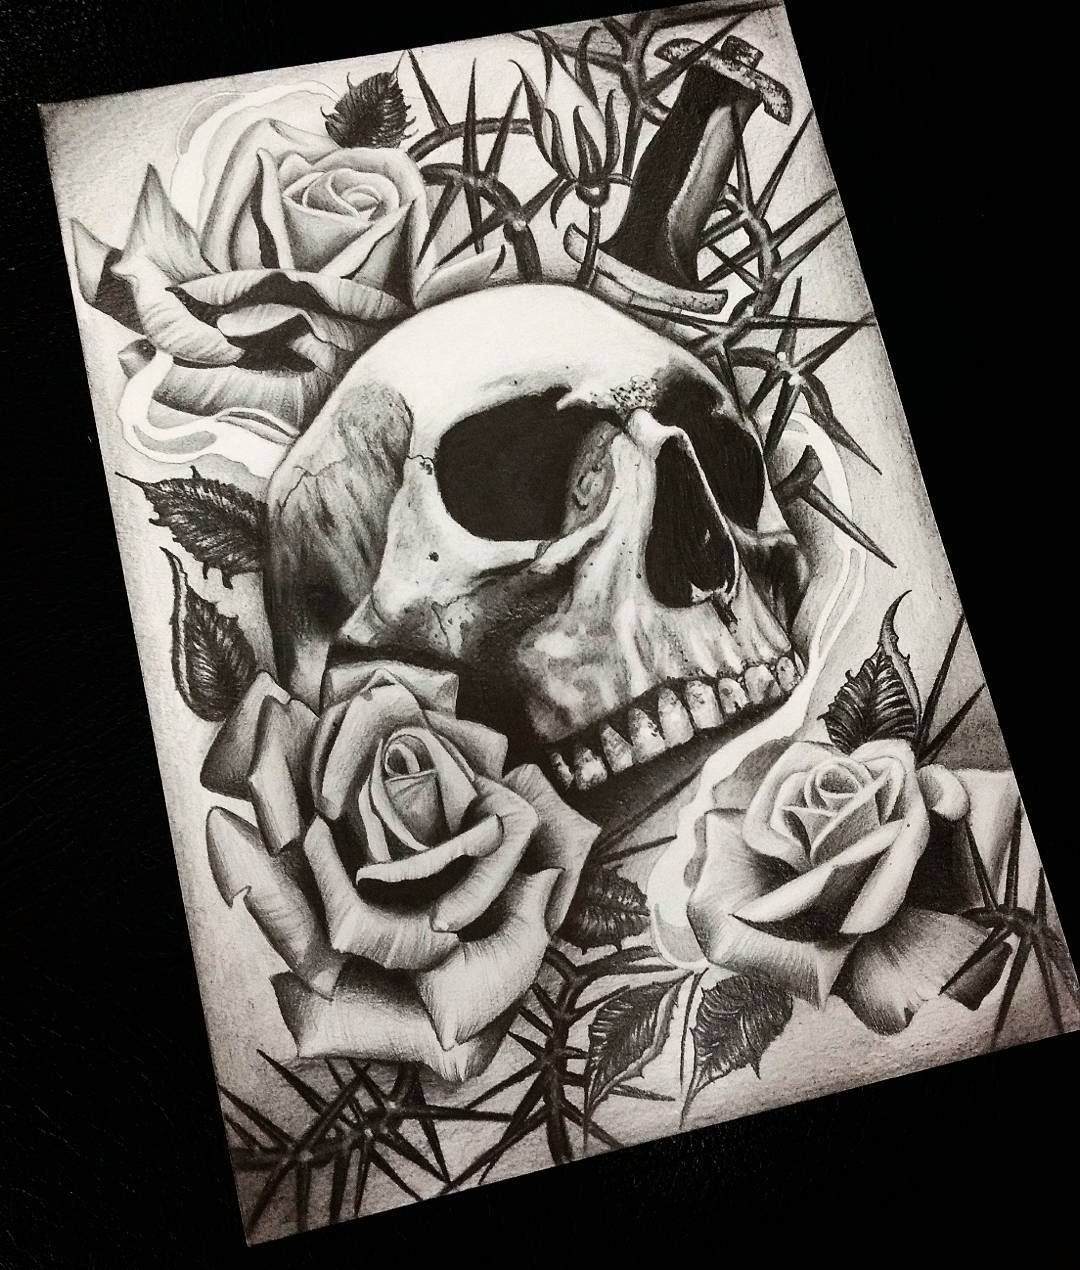 Skull and roses blasesacktattoos drawing Dibujos a